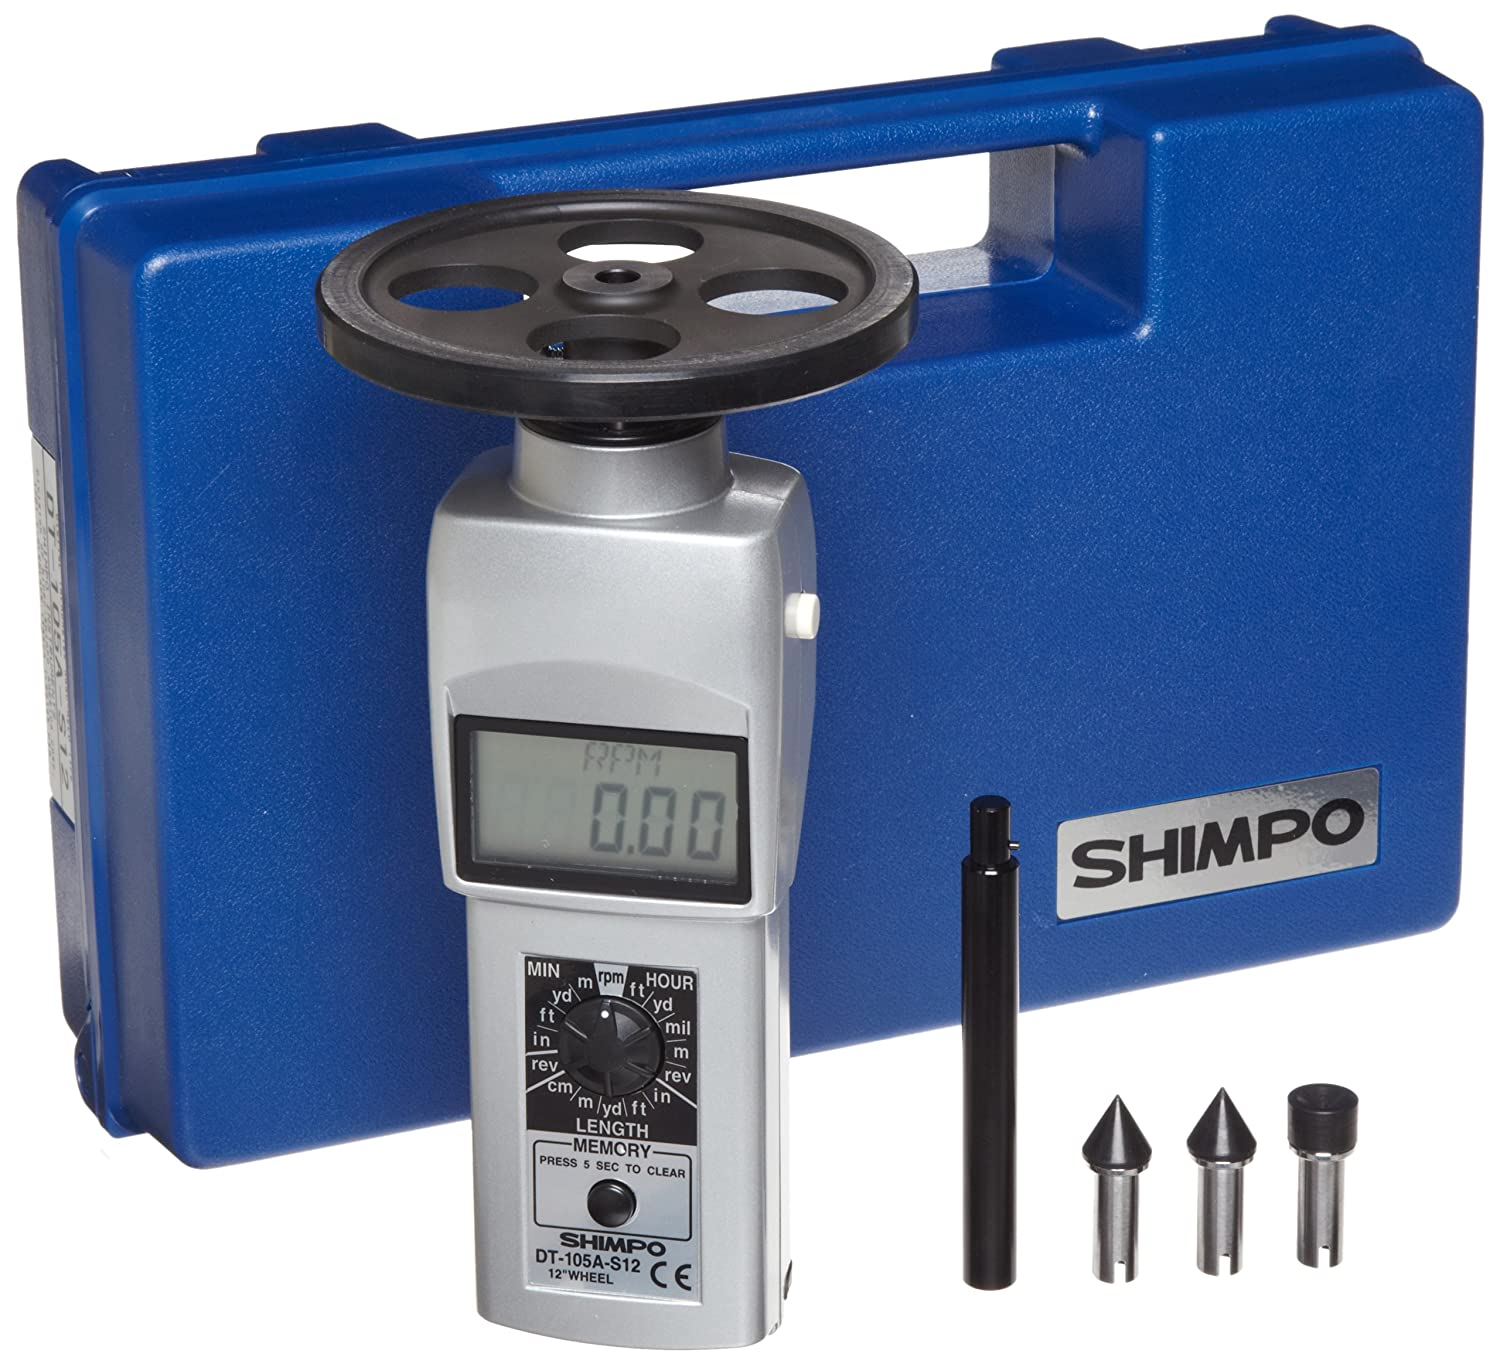 Shimpo DT-105A-S12 excellence Handheld shipfree Tachometer with Displ 12